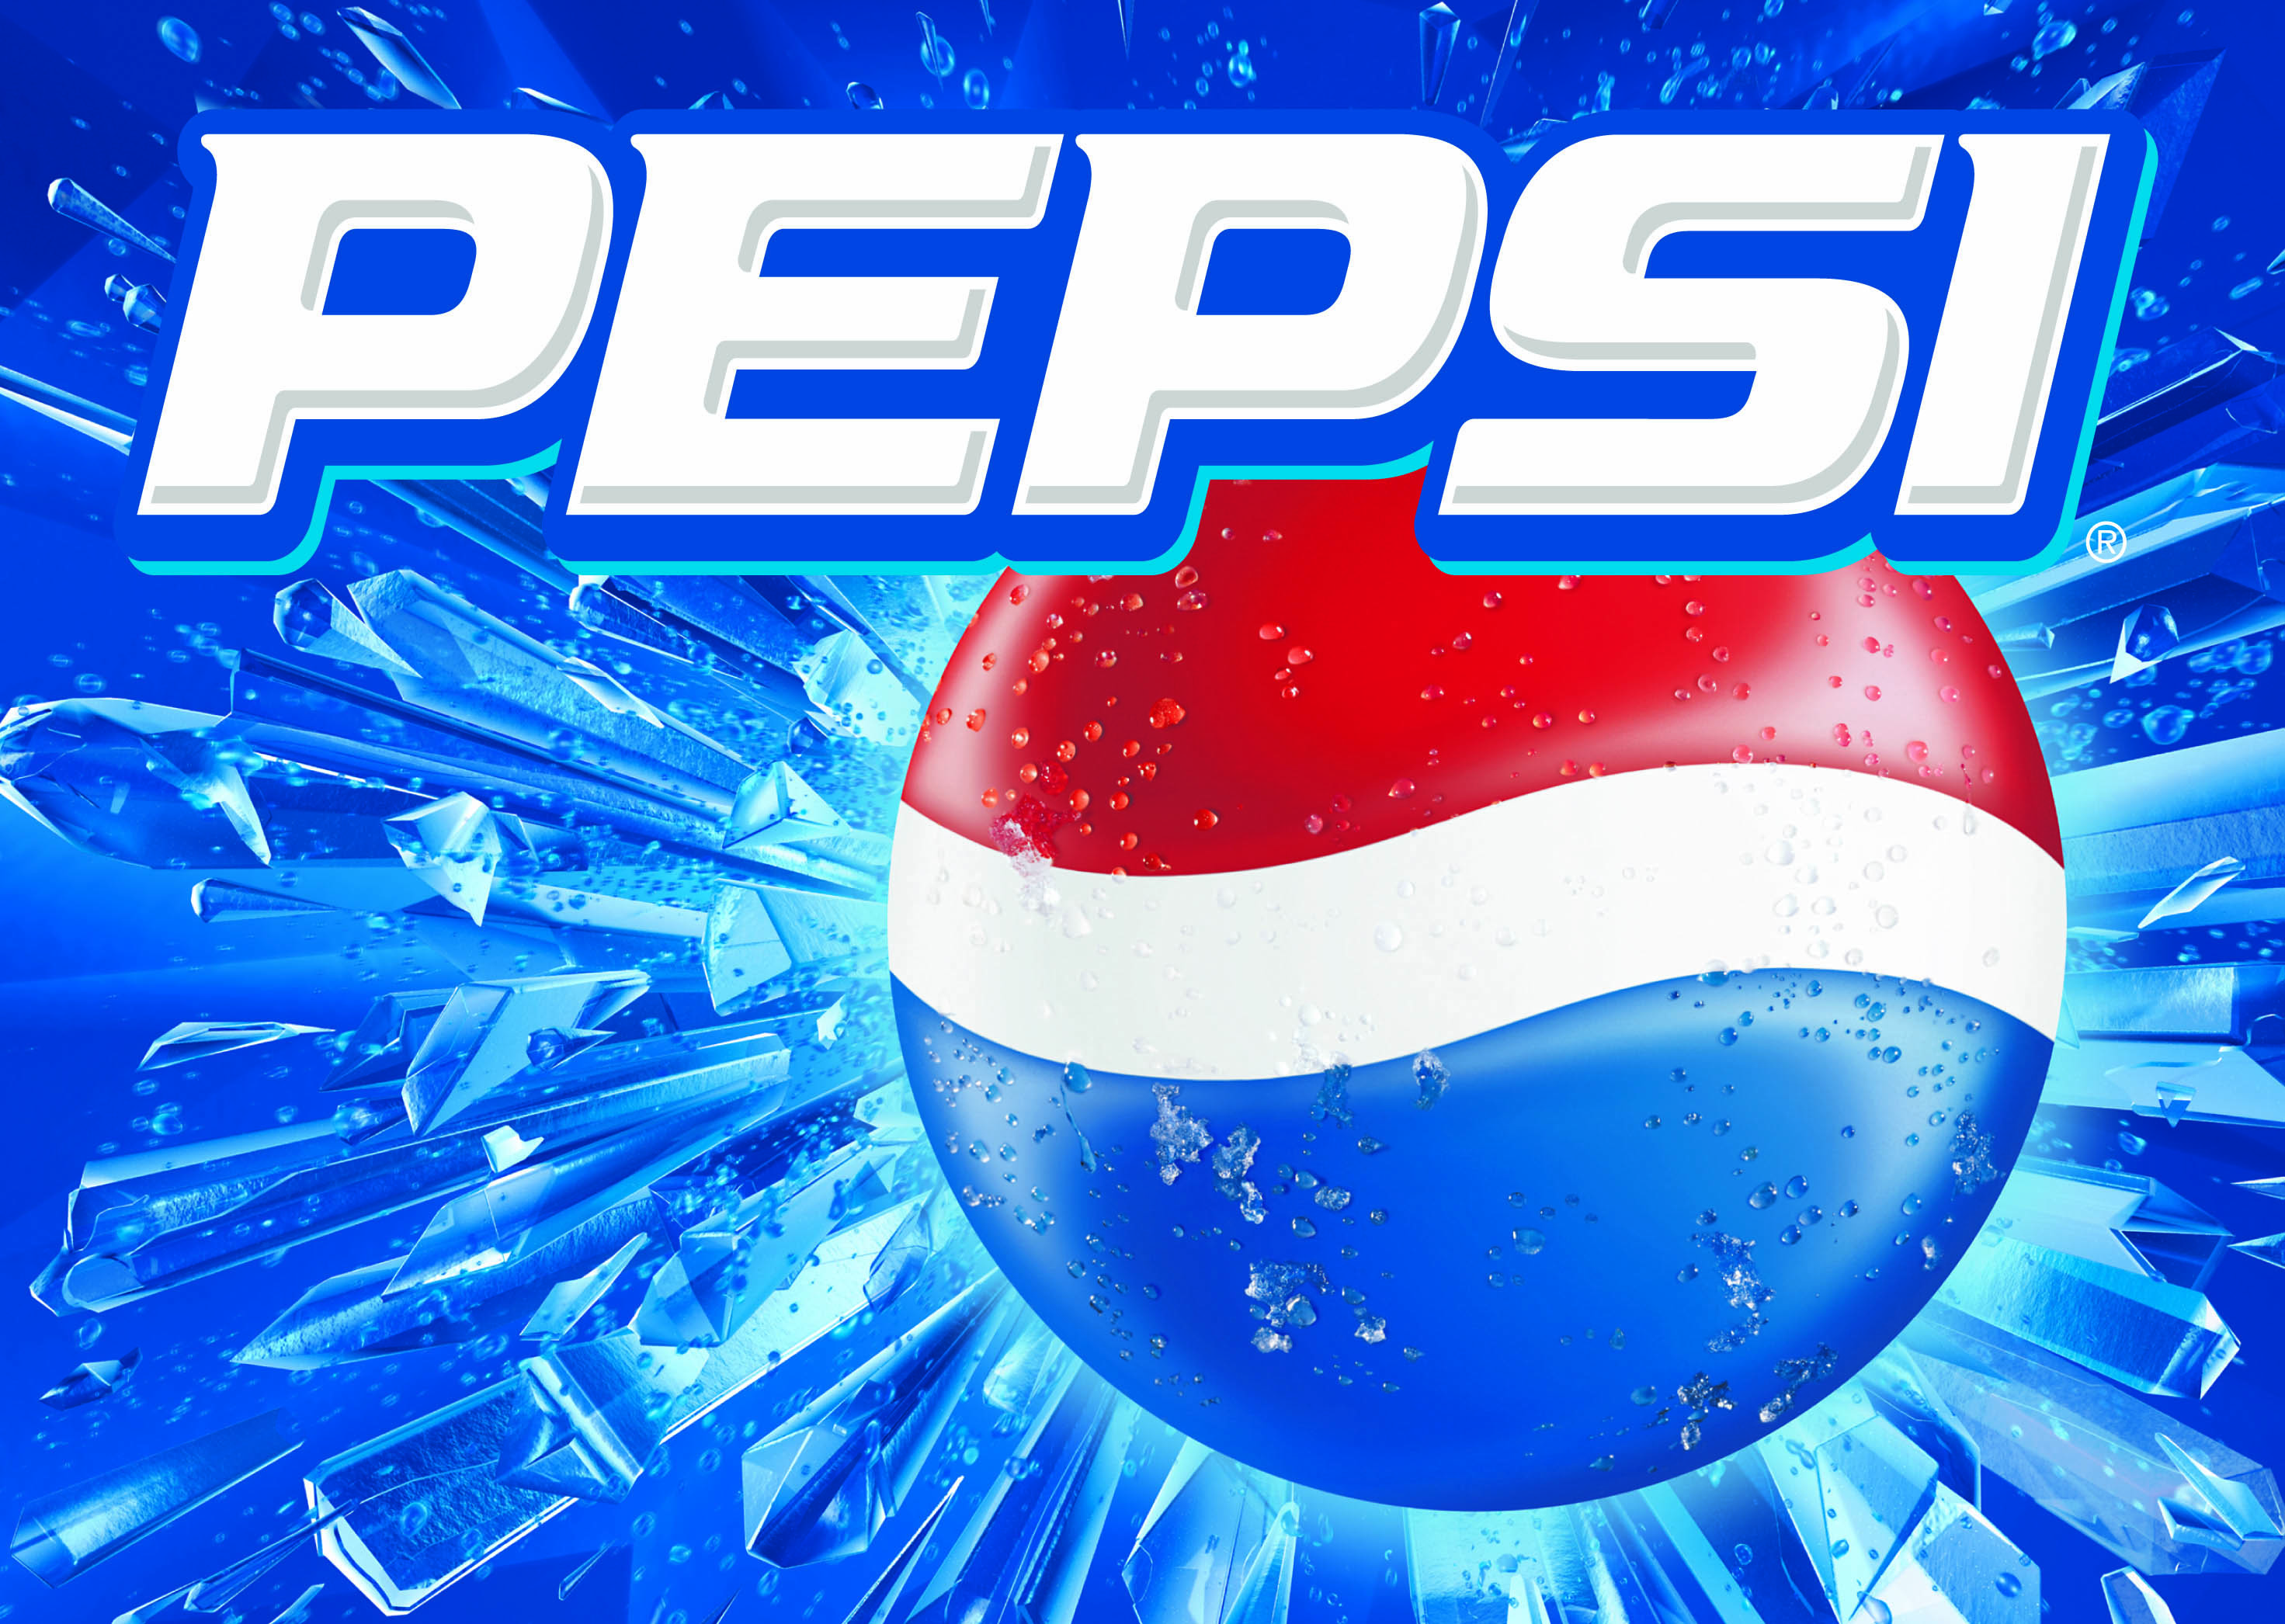 marketing strategy of pepsi bangladesh